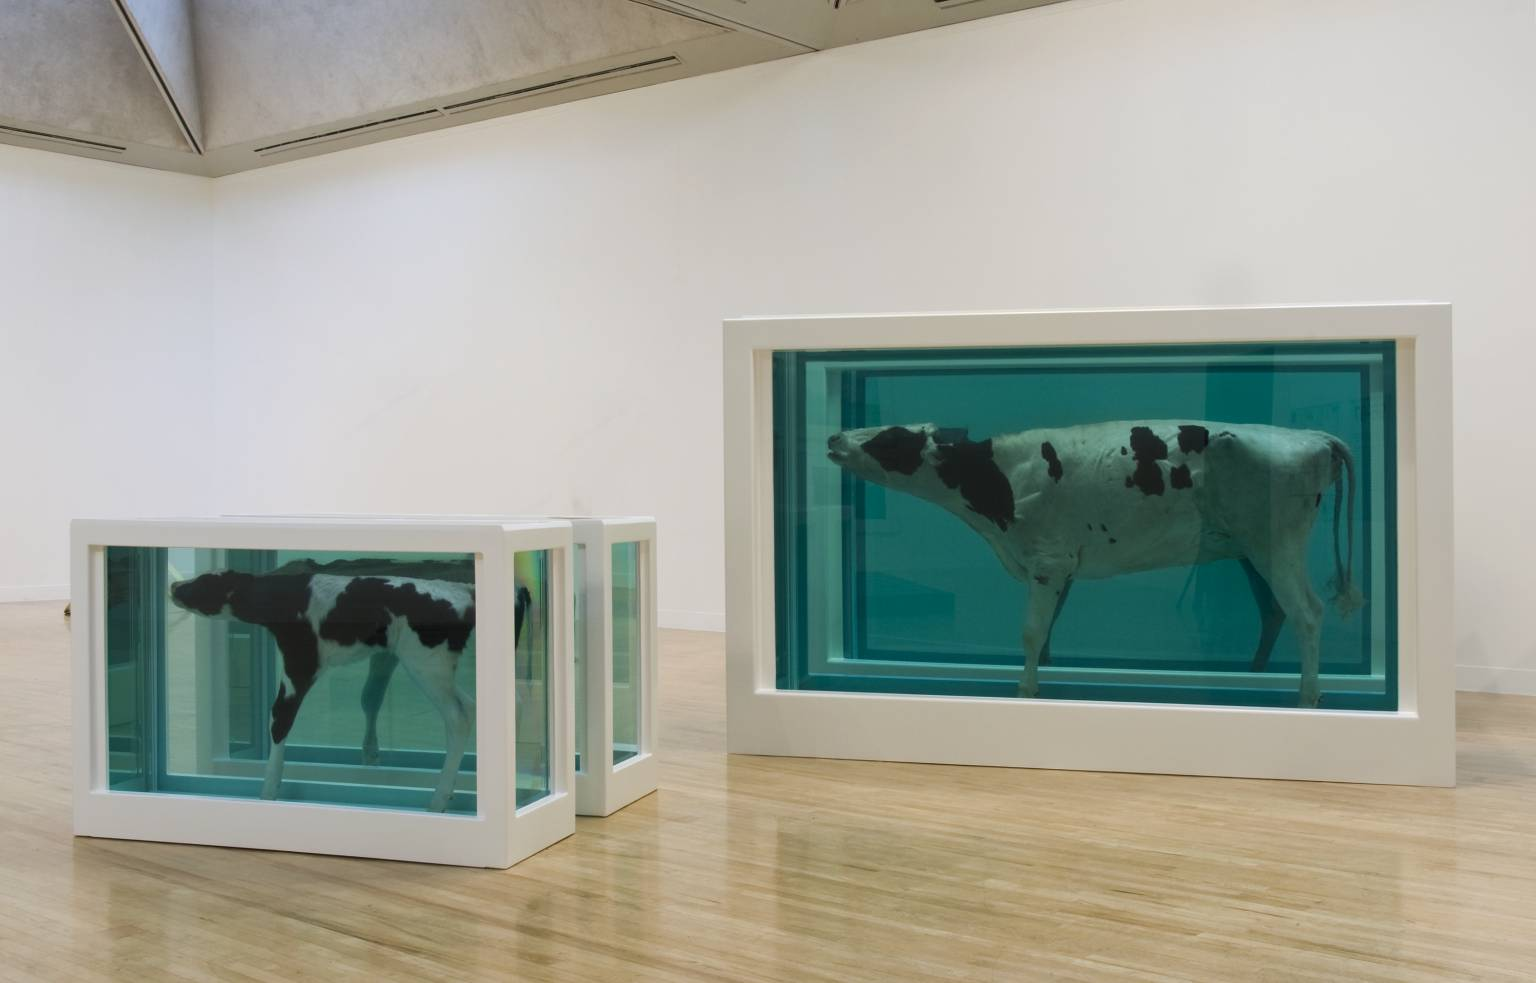 Mother and Child Divided exhibition copy 2007 (original 1993) by Damien Hirst born 1965